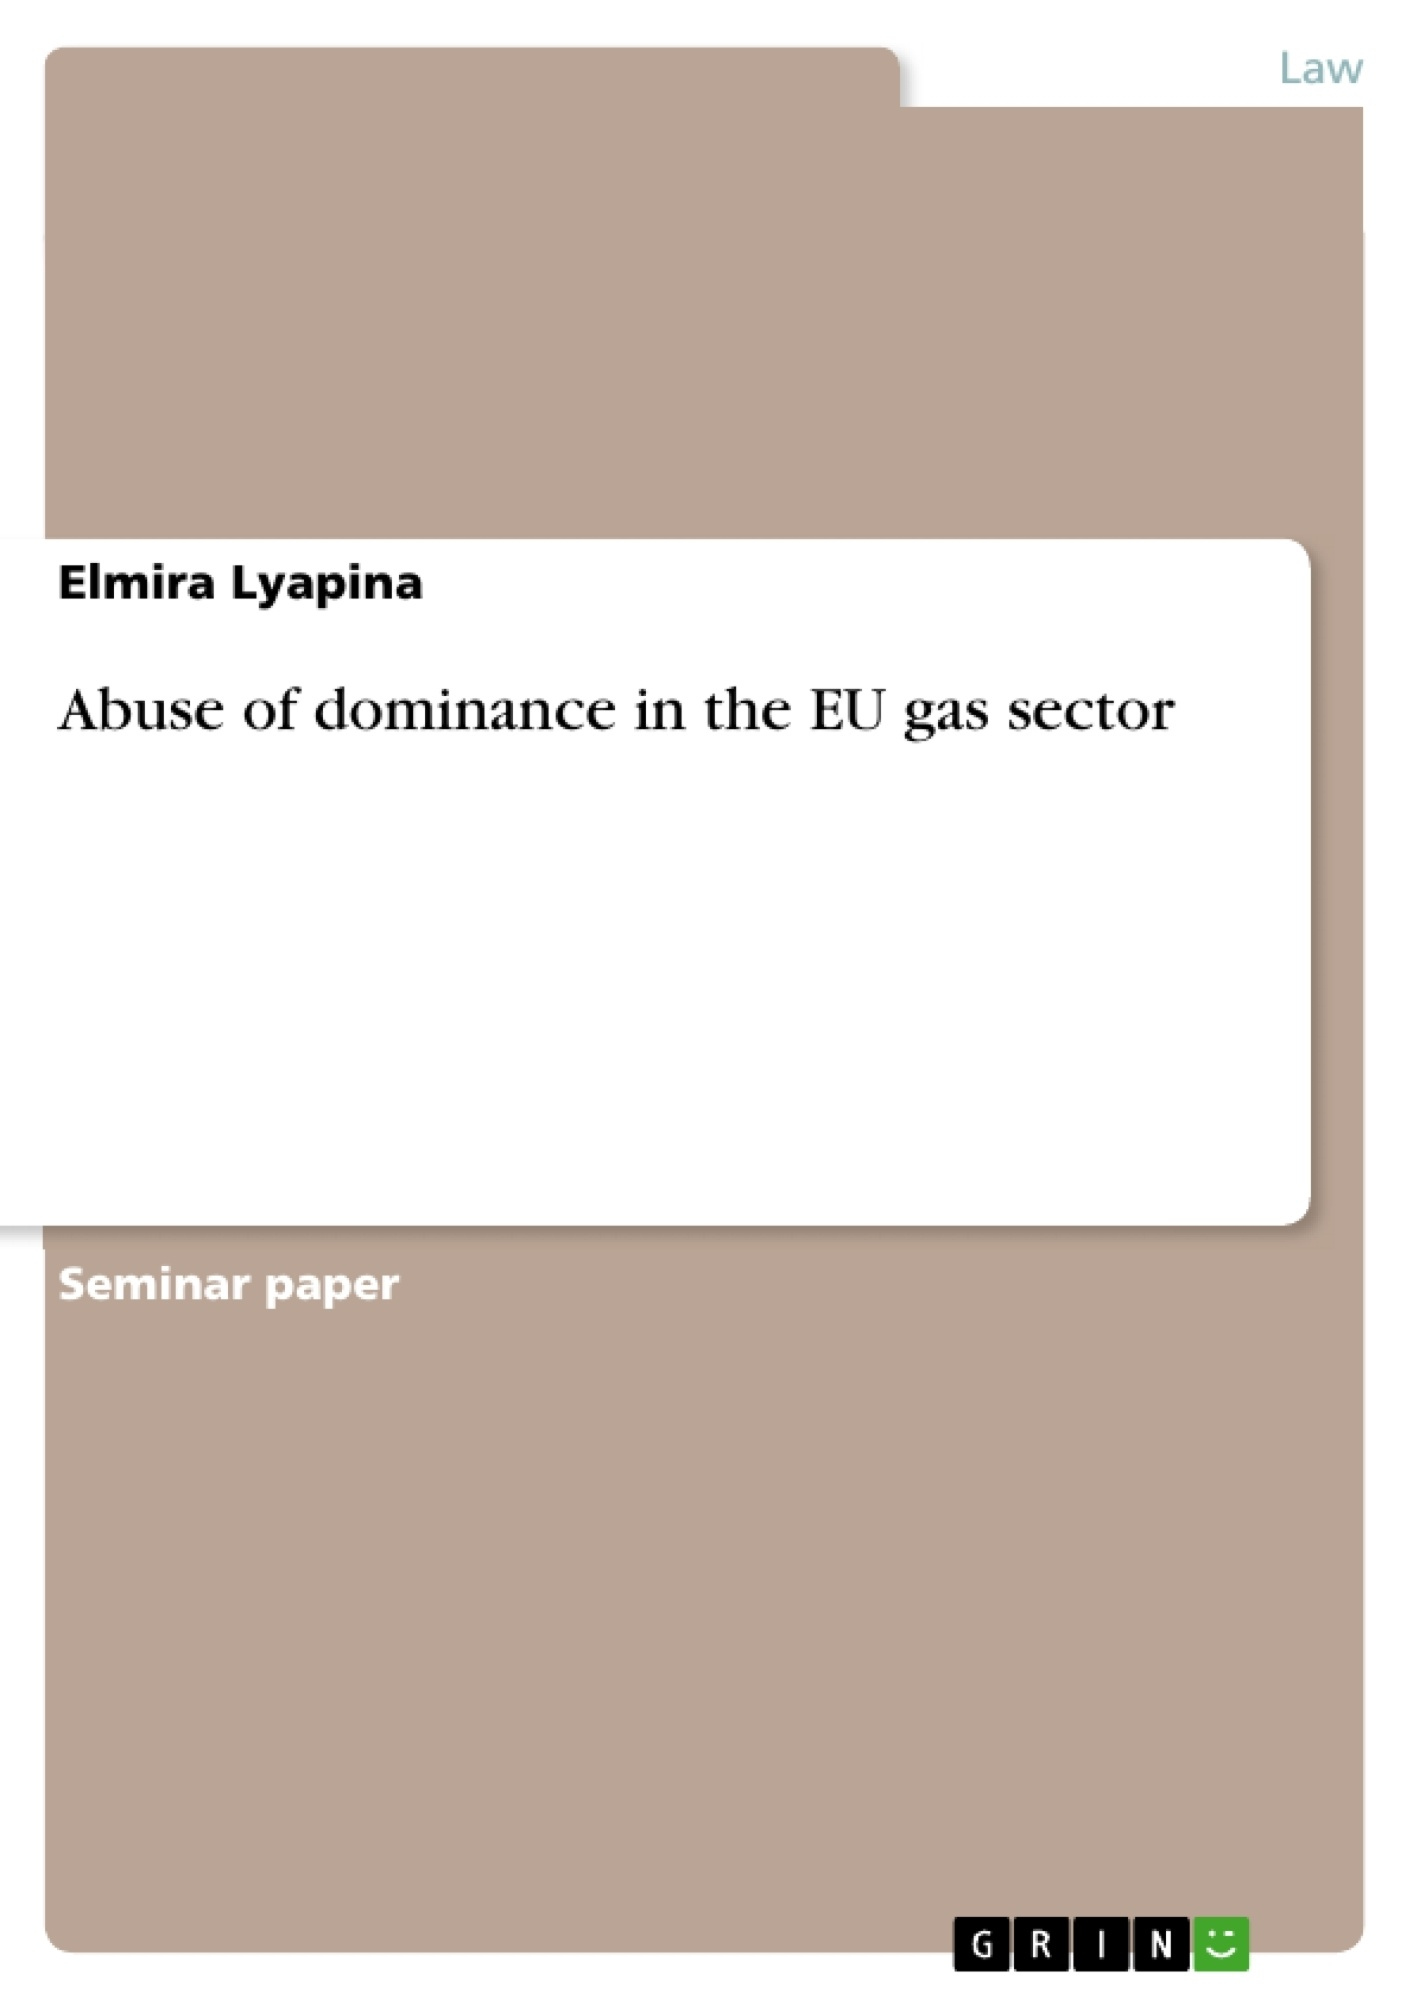 Title: Abuse of dominance in the EU gas sector